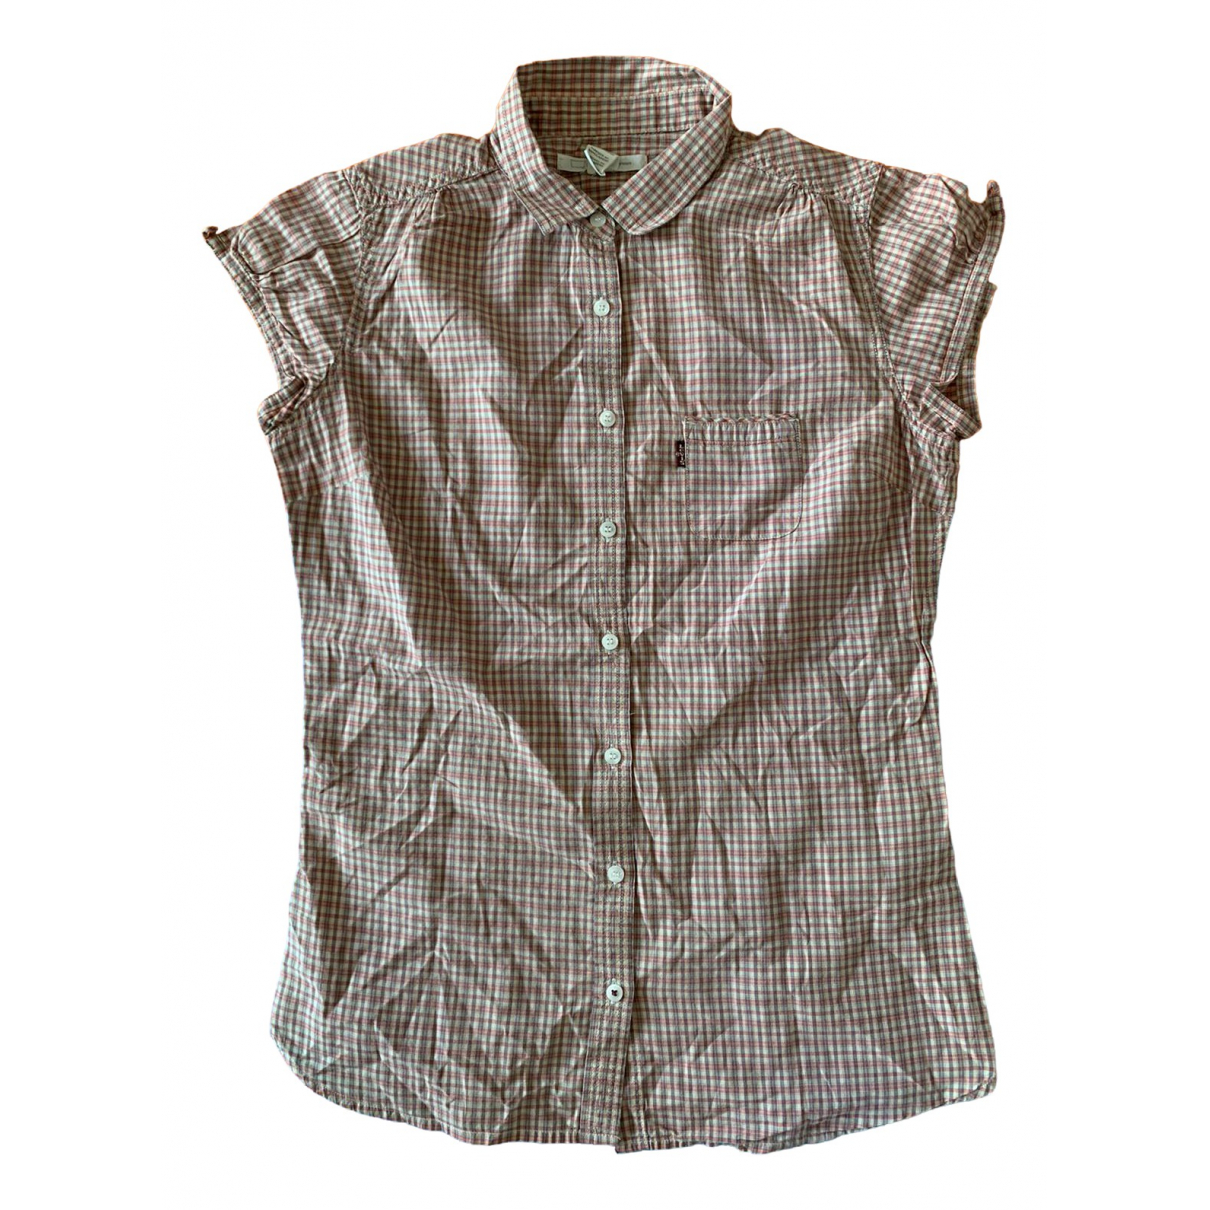 Levi's \N Brown Cotton  top for Women XS International